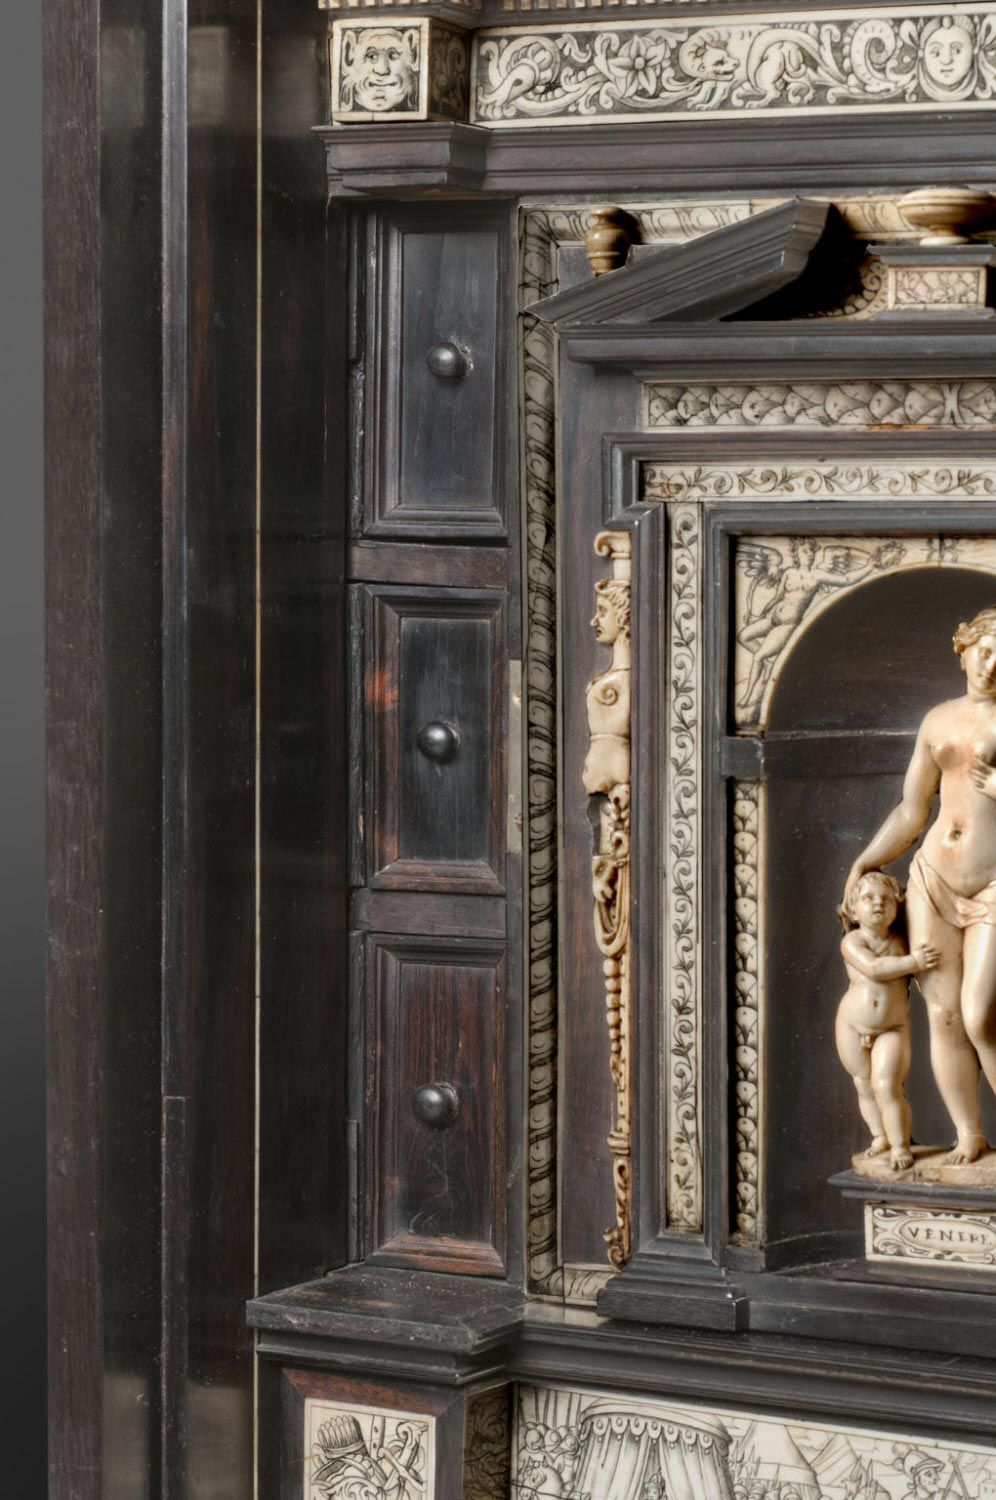 Writing Cabinet, c. 1600. Medium: Ebony with ivory inlay. Dimensions: 63.2 x 90.8 x 42.5 cm. Workshop of Iacobus Fiamengo, Flemish, recorded in Naples, Italy, between 1594 - 1602. Scenes based on engravings made by Dirk Volkertsz. -Philadelphia Museum of Art-